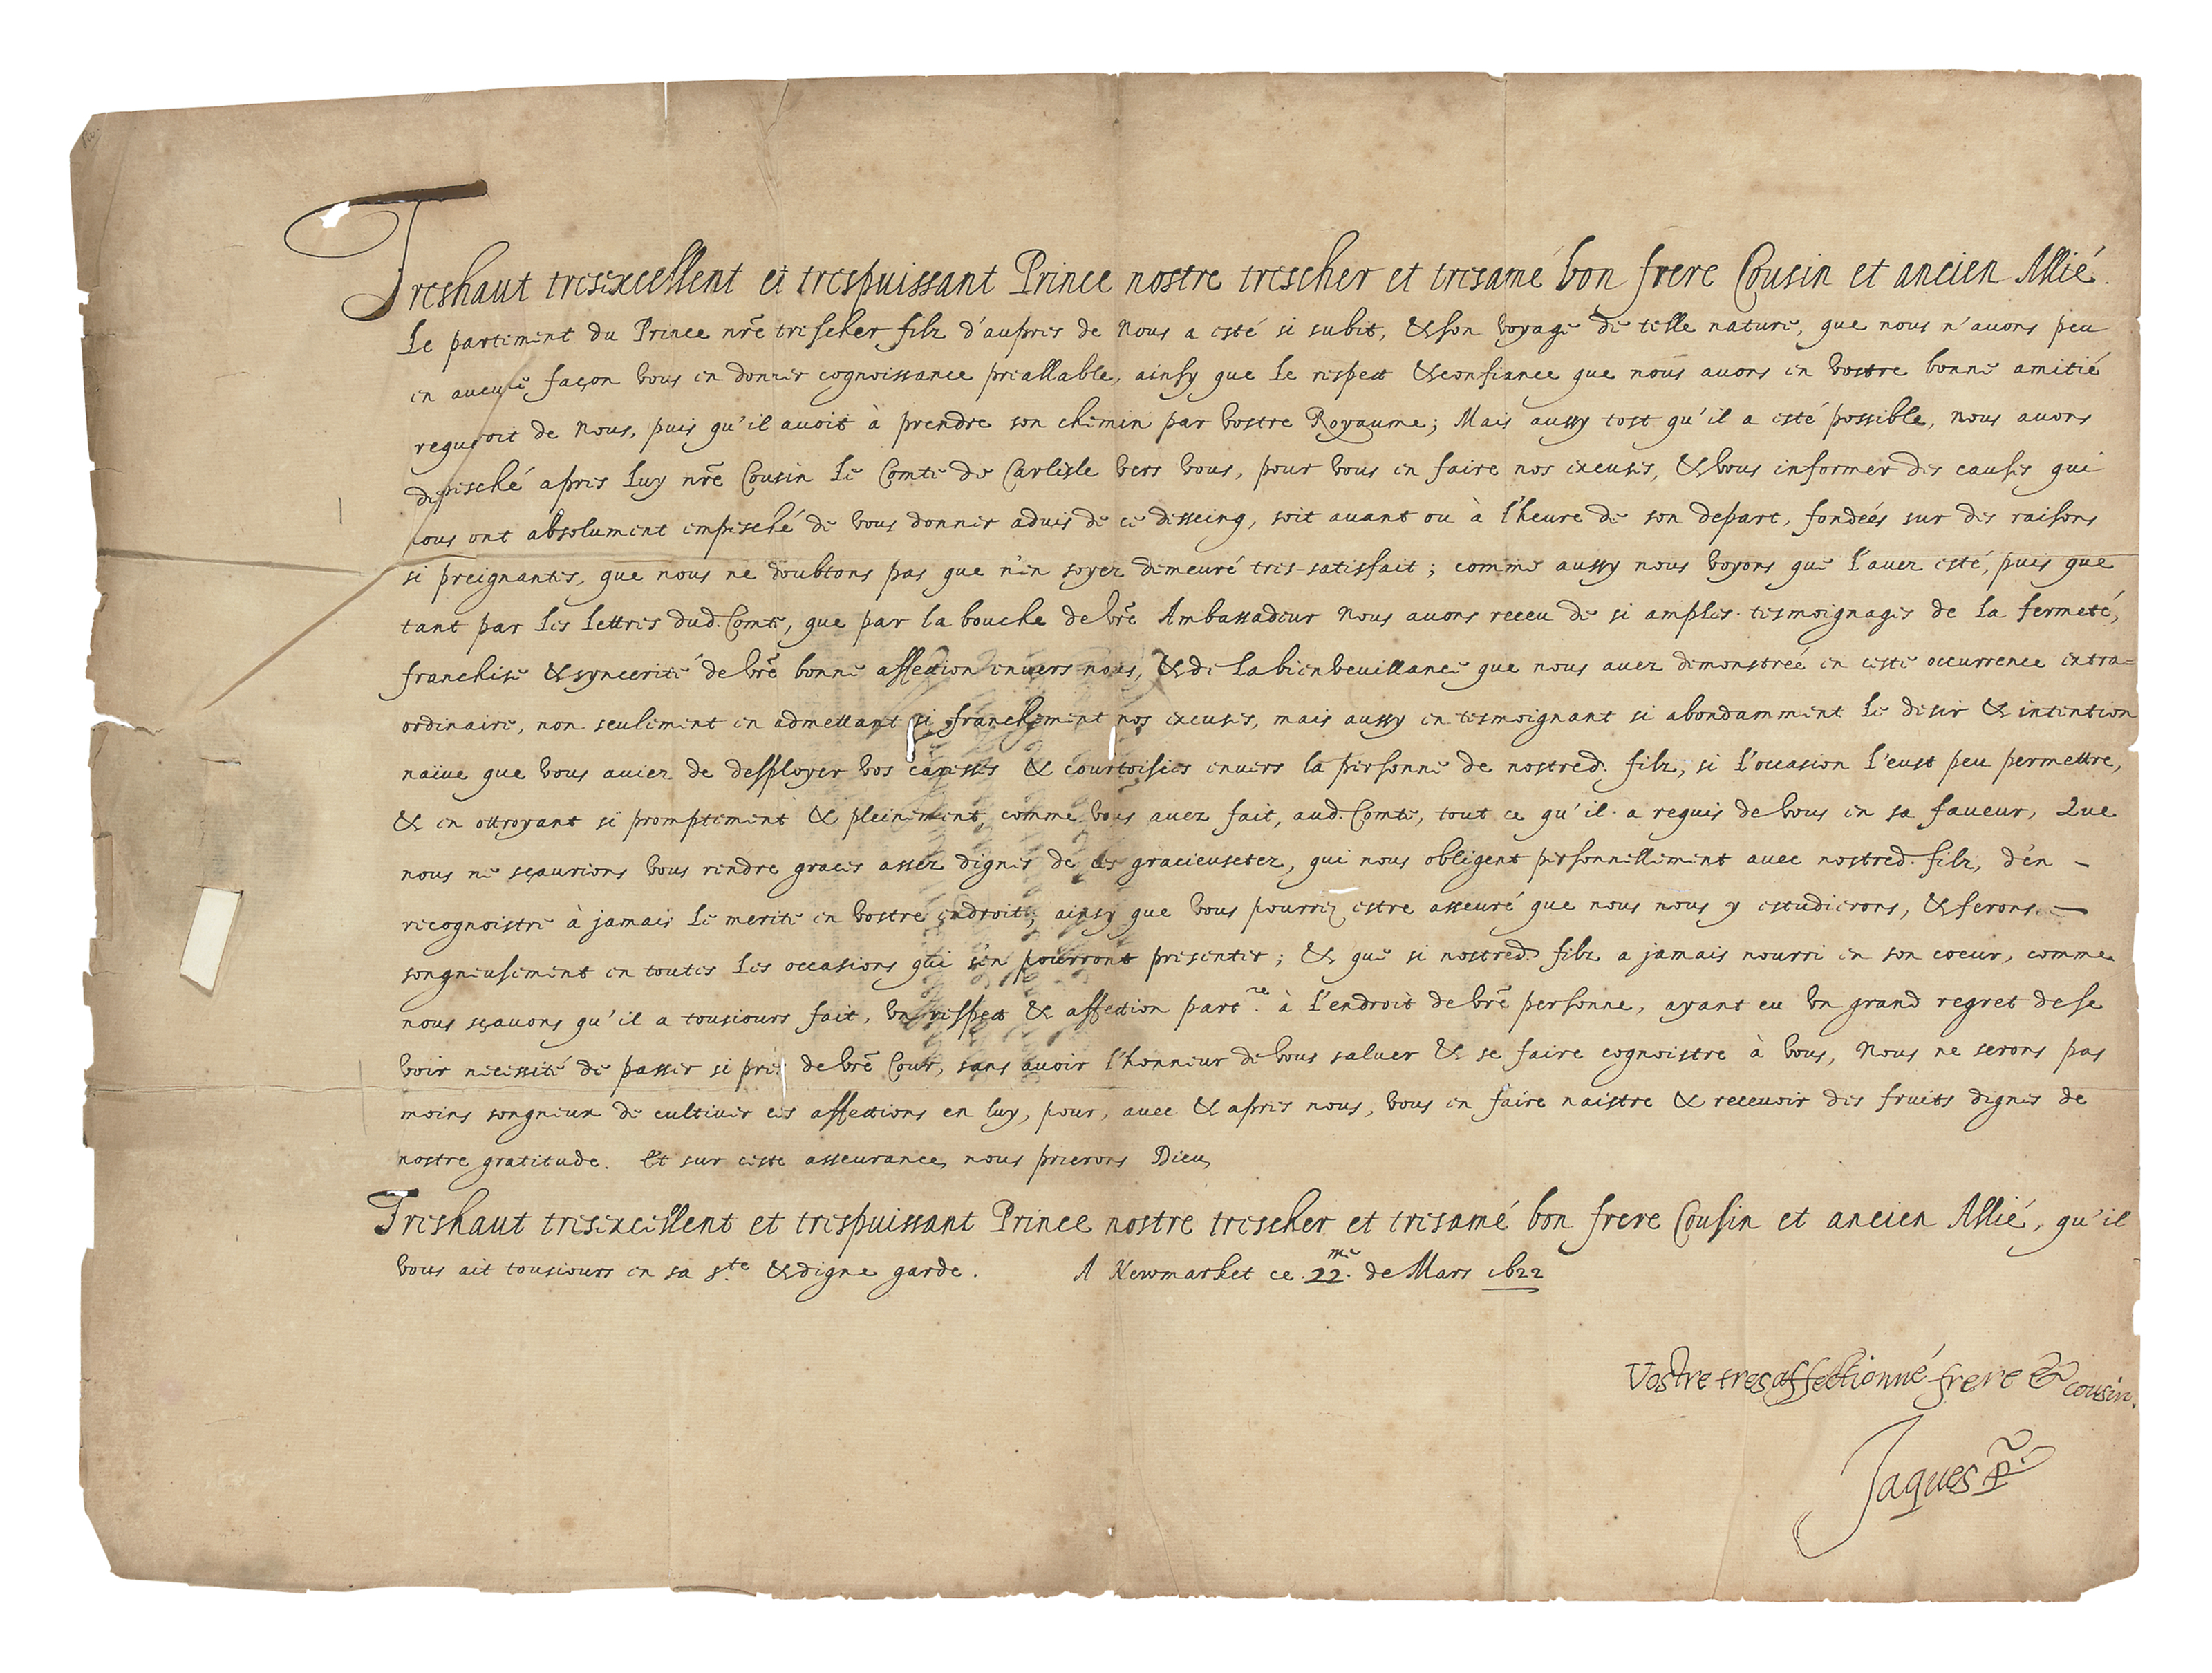 JAMES VI & I (1566-1625), King of Scotland, England and Ireland. Letter signed ('Vostre tres affectionné frere & cousin  Jaques R') to Louis XIII of France, Newmarket, 22 March 1622/3, in French, proferring excuses for the fact that the journey through France of the Prince of Wales (the future Charles I) had taken place so suddenly that there had not been time to give Louis due warning, though the Earl of Carlisle had immediately been sent to make due excuses and explanations; James confesses himself touched by Louis's indulgence in this matter, 'la bienveillance que vous avez demonstrée en ceste occurrence extraordinare', and duly offers extravagant thanks, one page, 335 x 453mm, integral address panel, endorsements, papered seal (seal slits, general browning, some punctures from ink acidification).